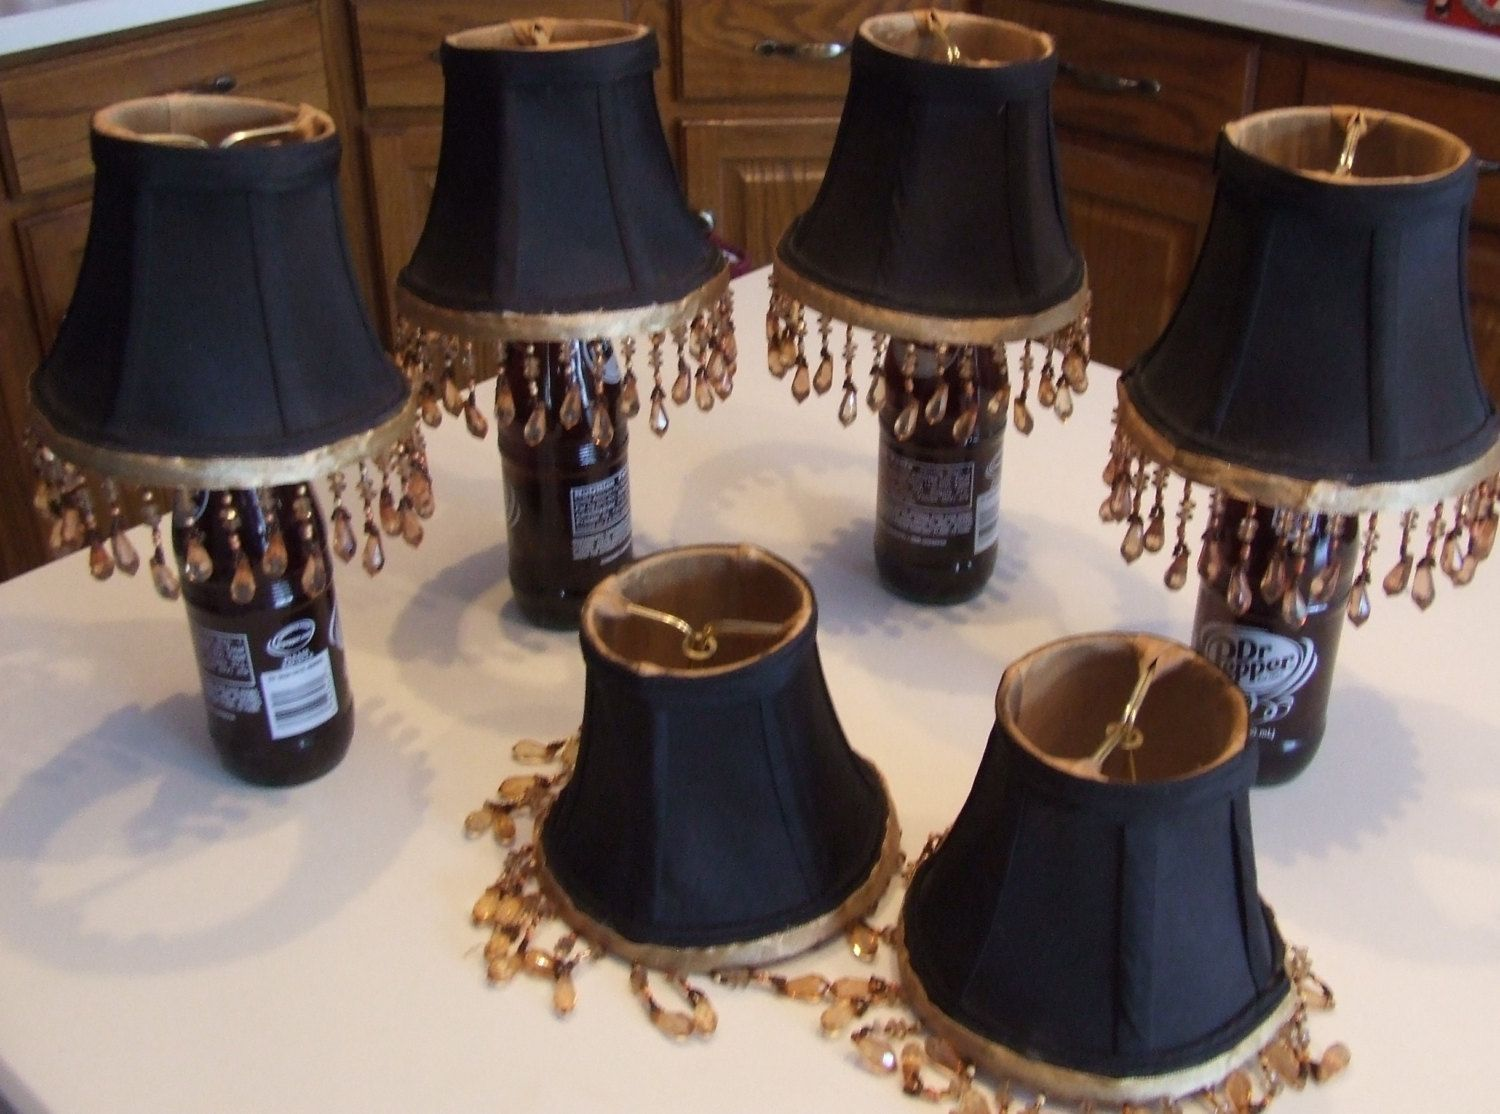 Lamp Shades Mini Lamp Shades Black Lamp Shades With Bead Etsy Small Lamp Shades Antique Lamp Shades Old Lamp Shades